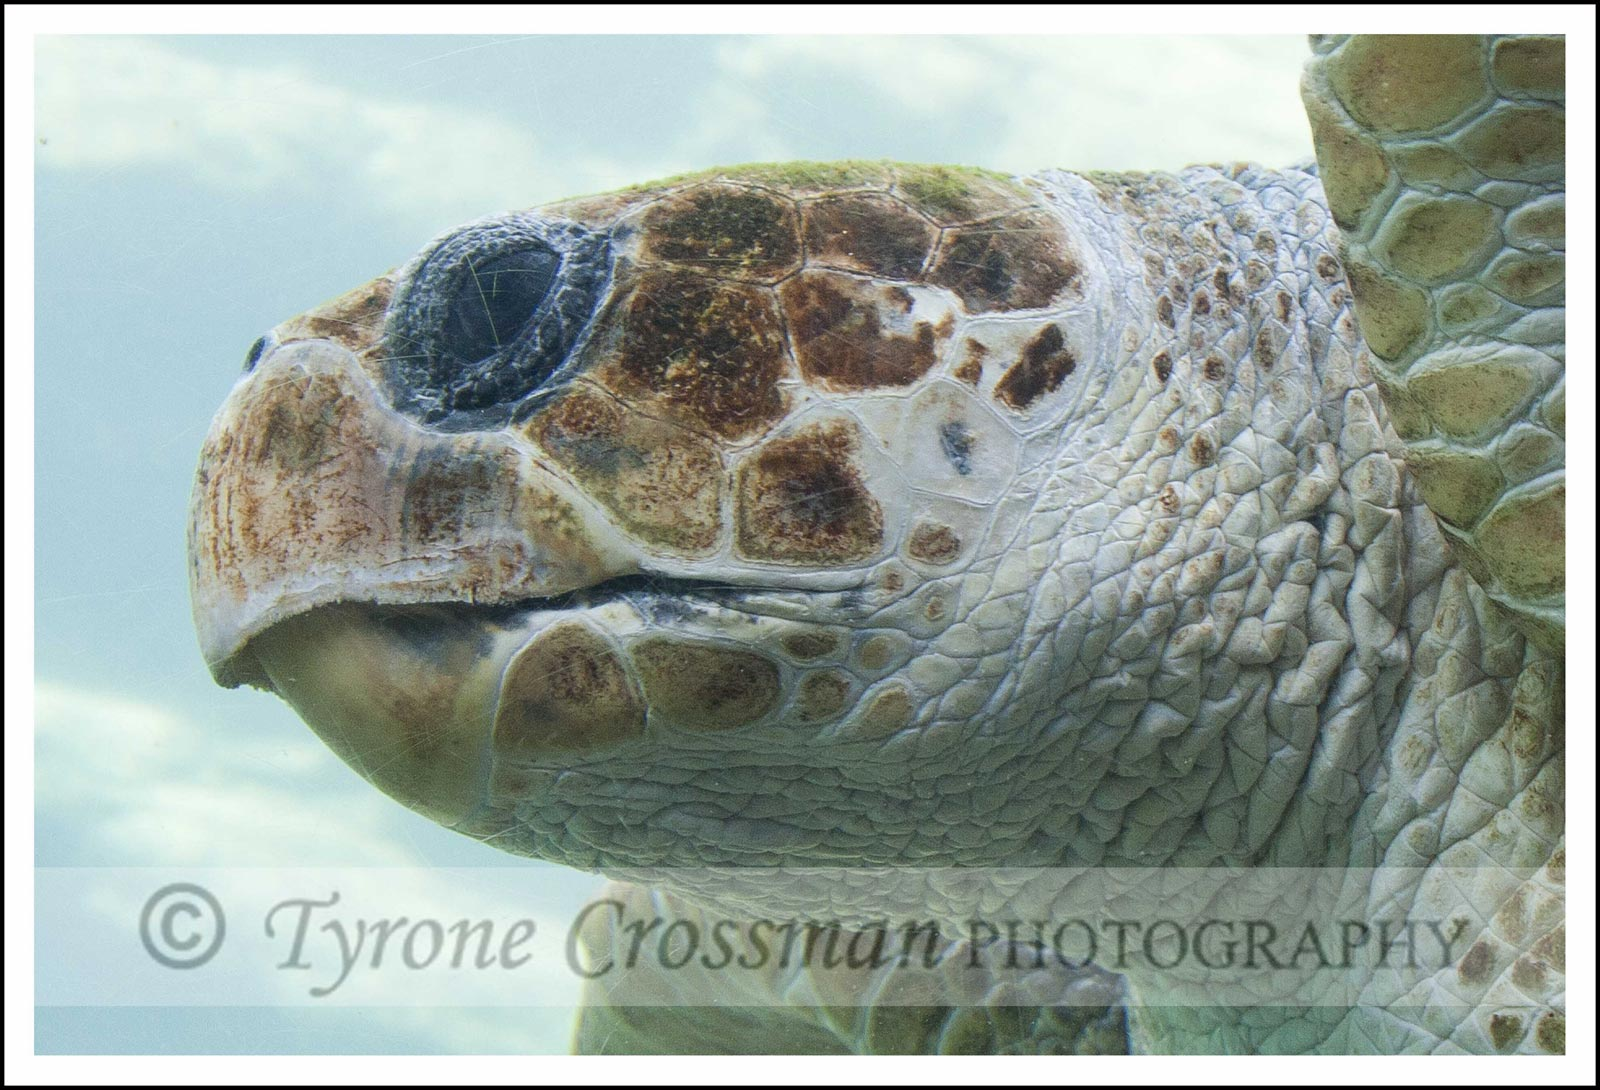 Loggerhead Sea Turtle at Ushaka Marine World, Durban South Africa. Photograph attribution to Tyrone Crossman Photography